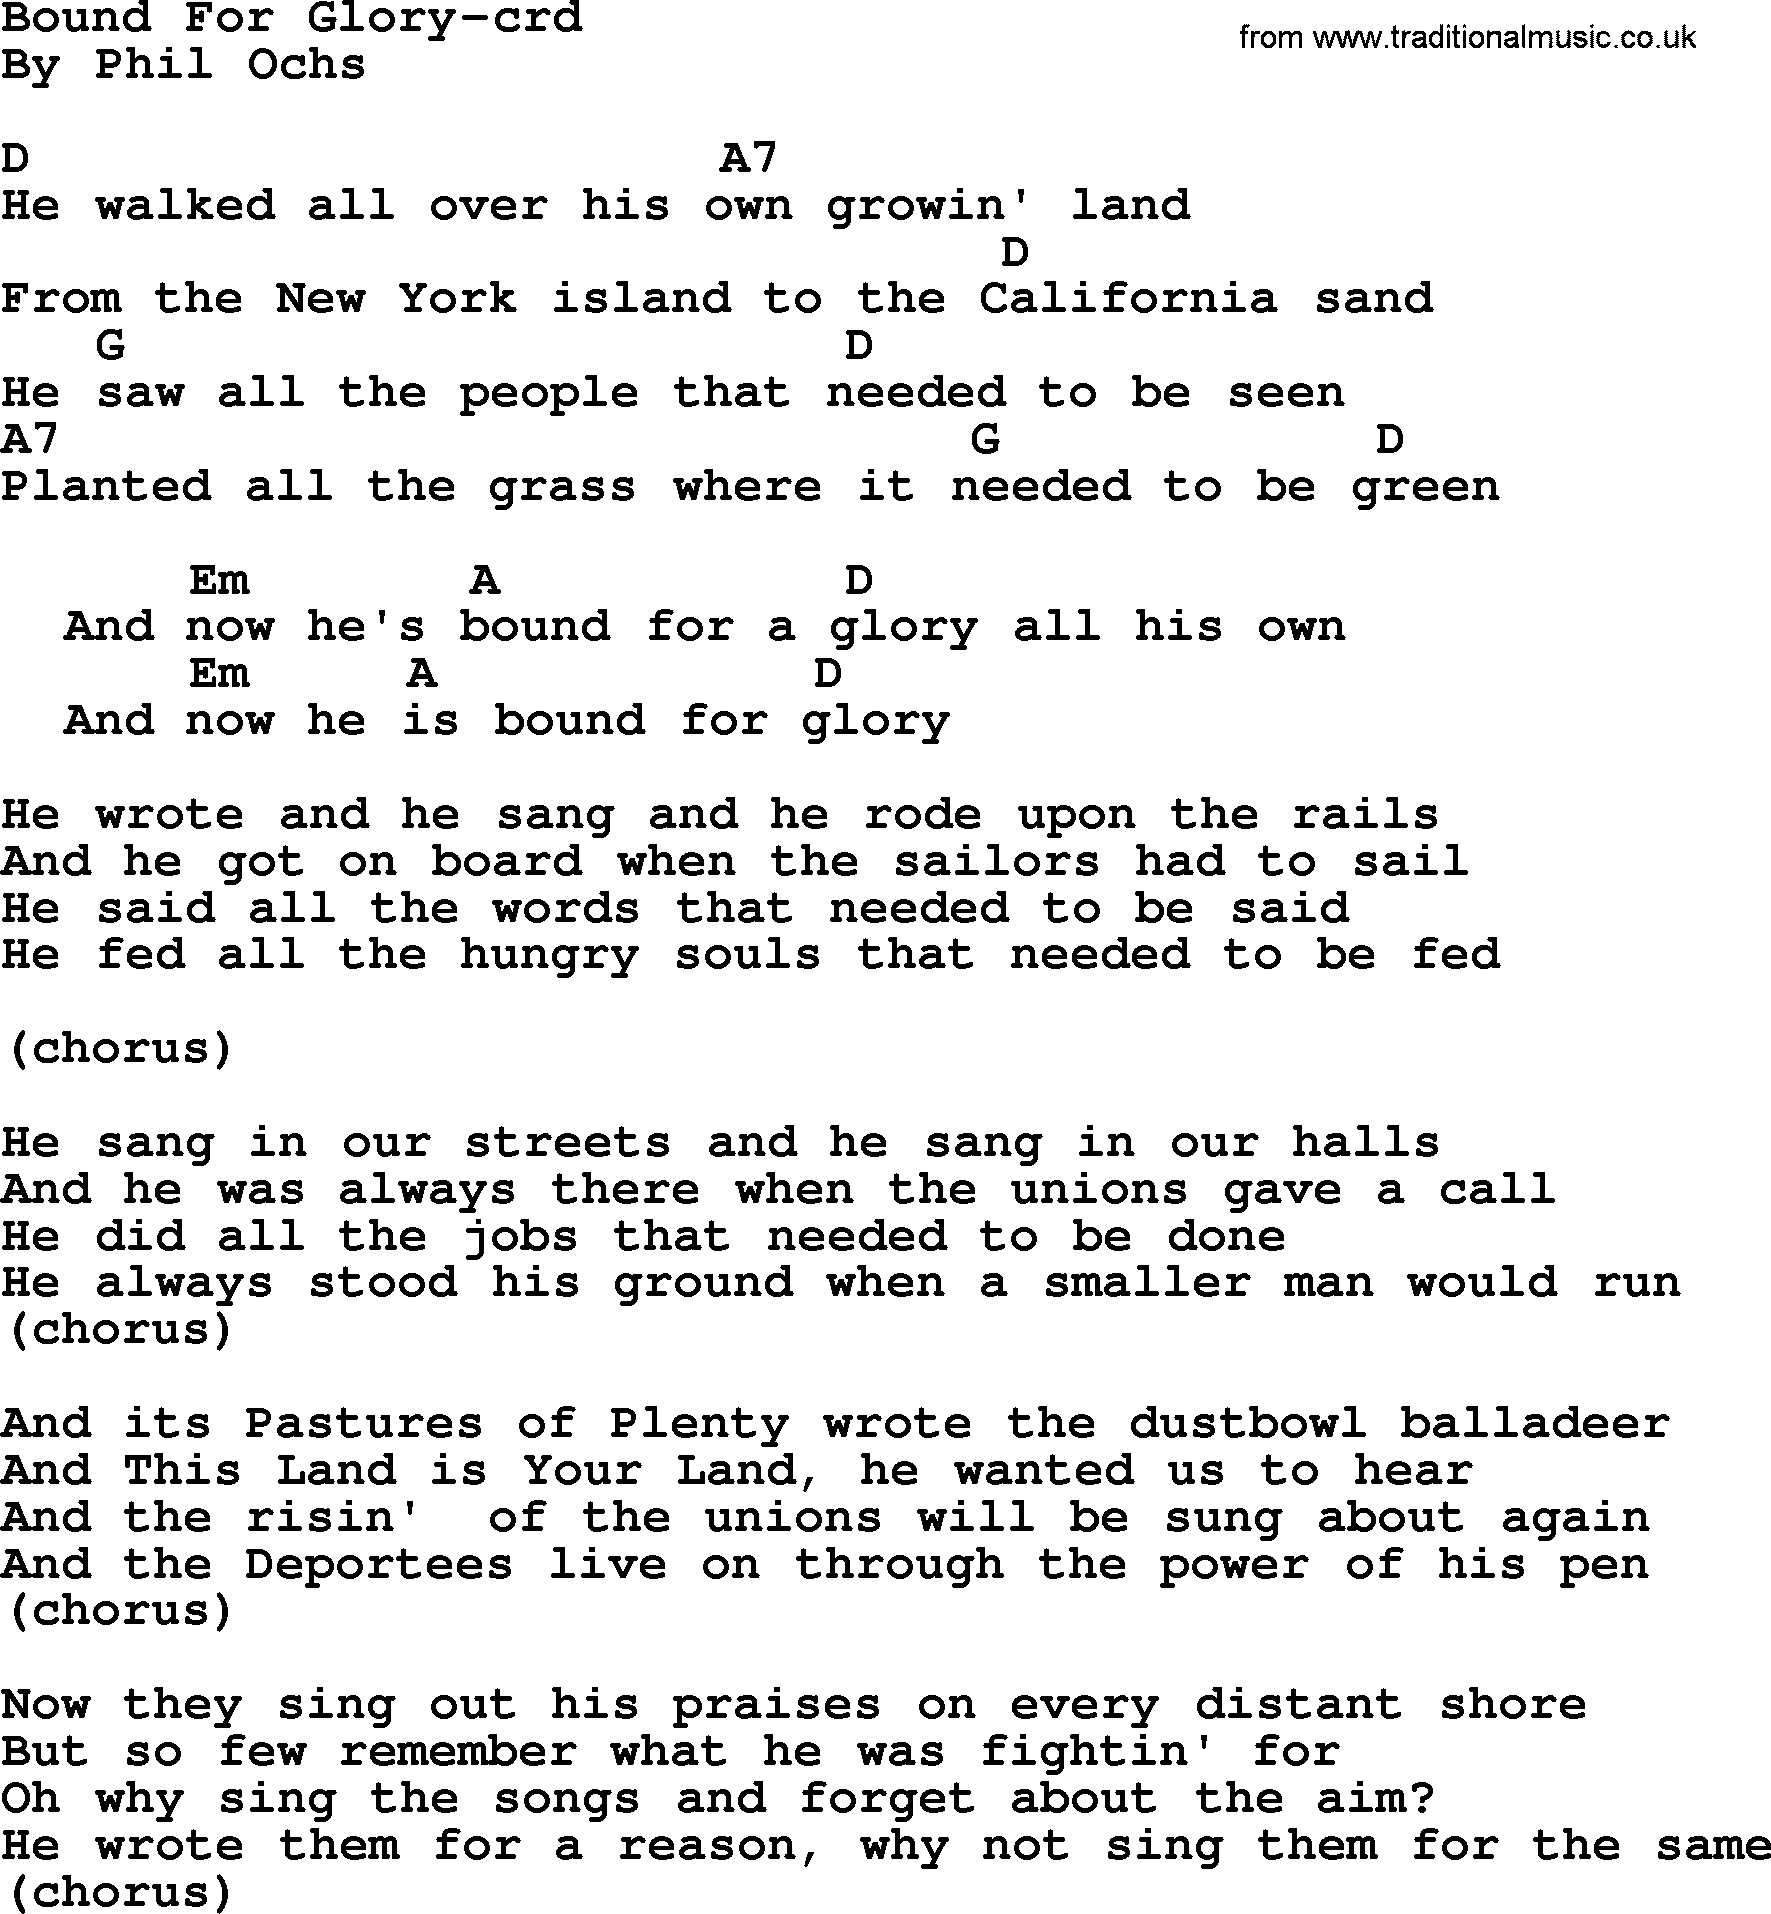 Phil ochs song bound for glory by phil ochs lyrics and chords phil ochs song bound for glory by phil ochs lyrics and chords hexwebz Images